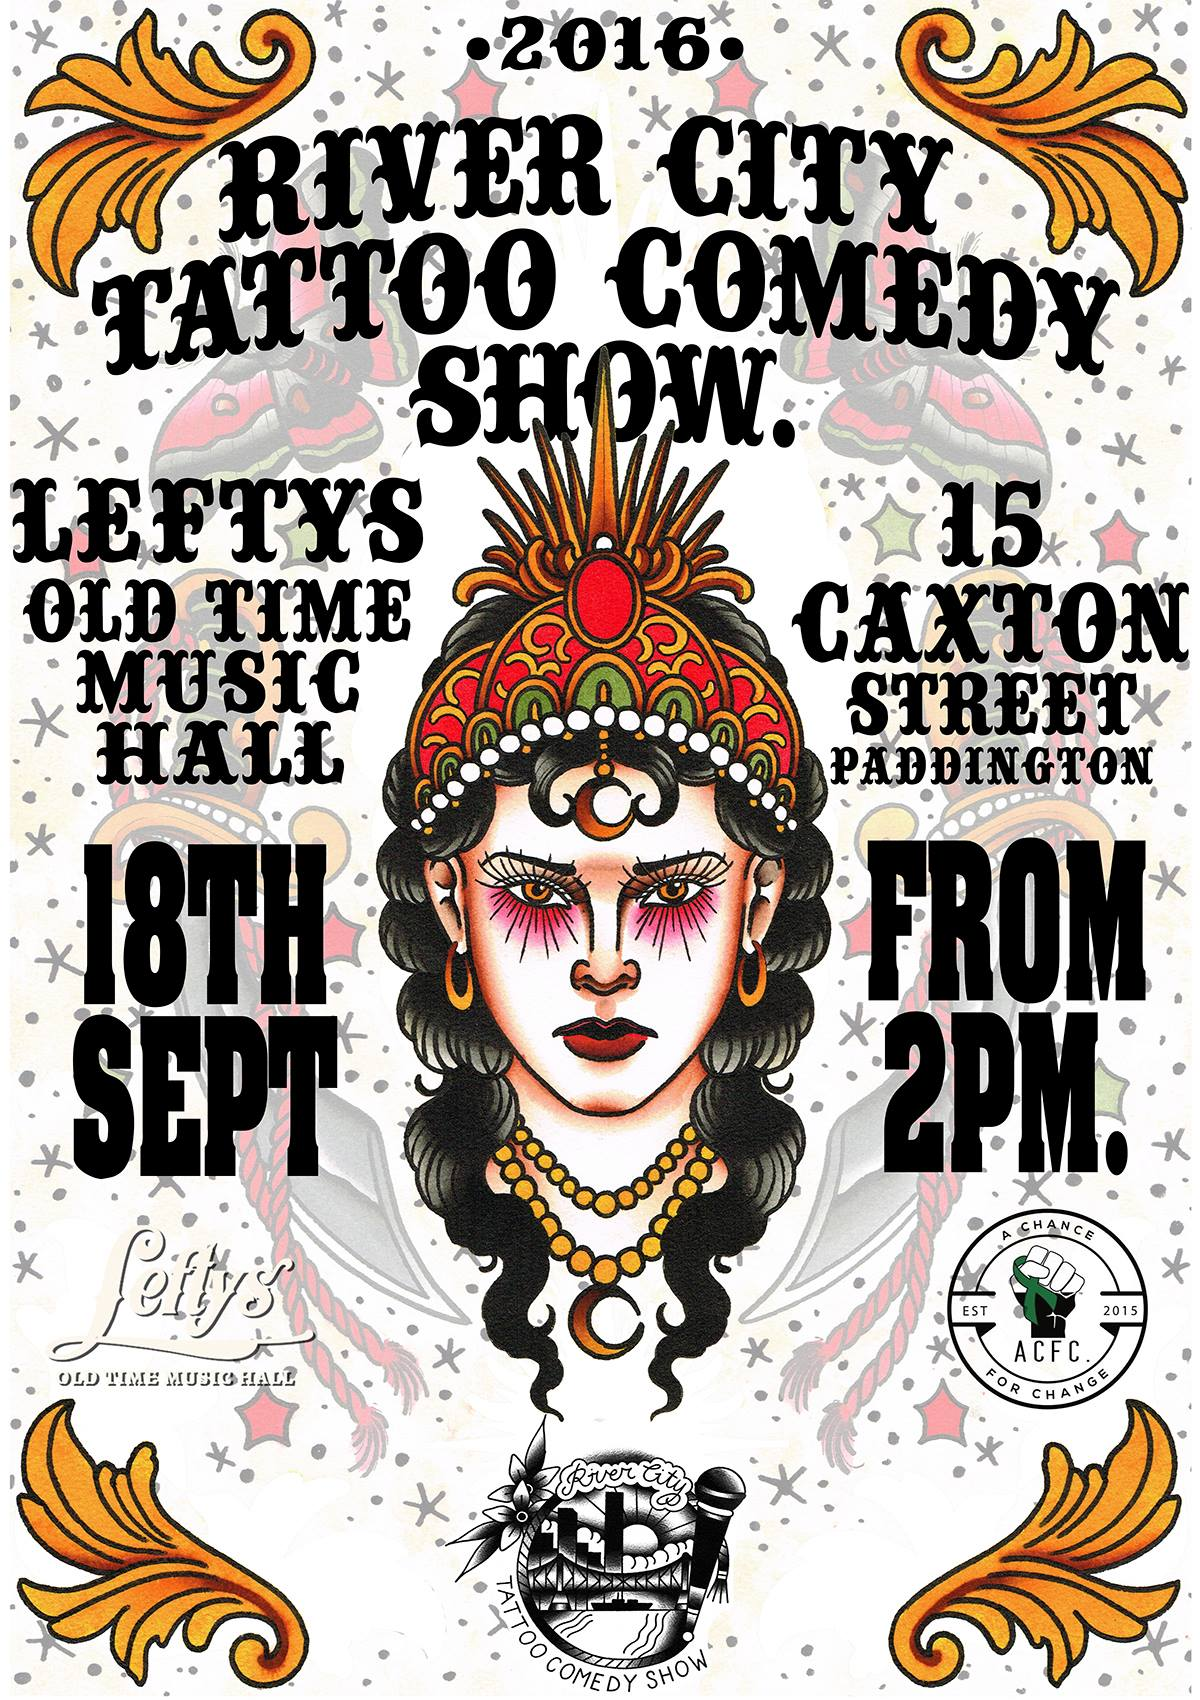 Upcoming Events | River City Tattoo Comedy Show | A Chance For Change